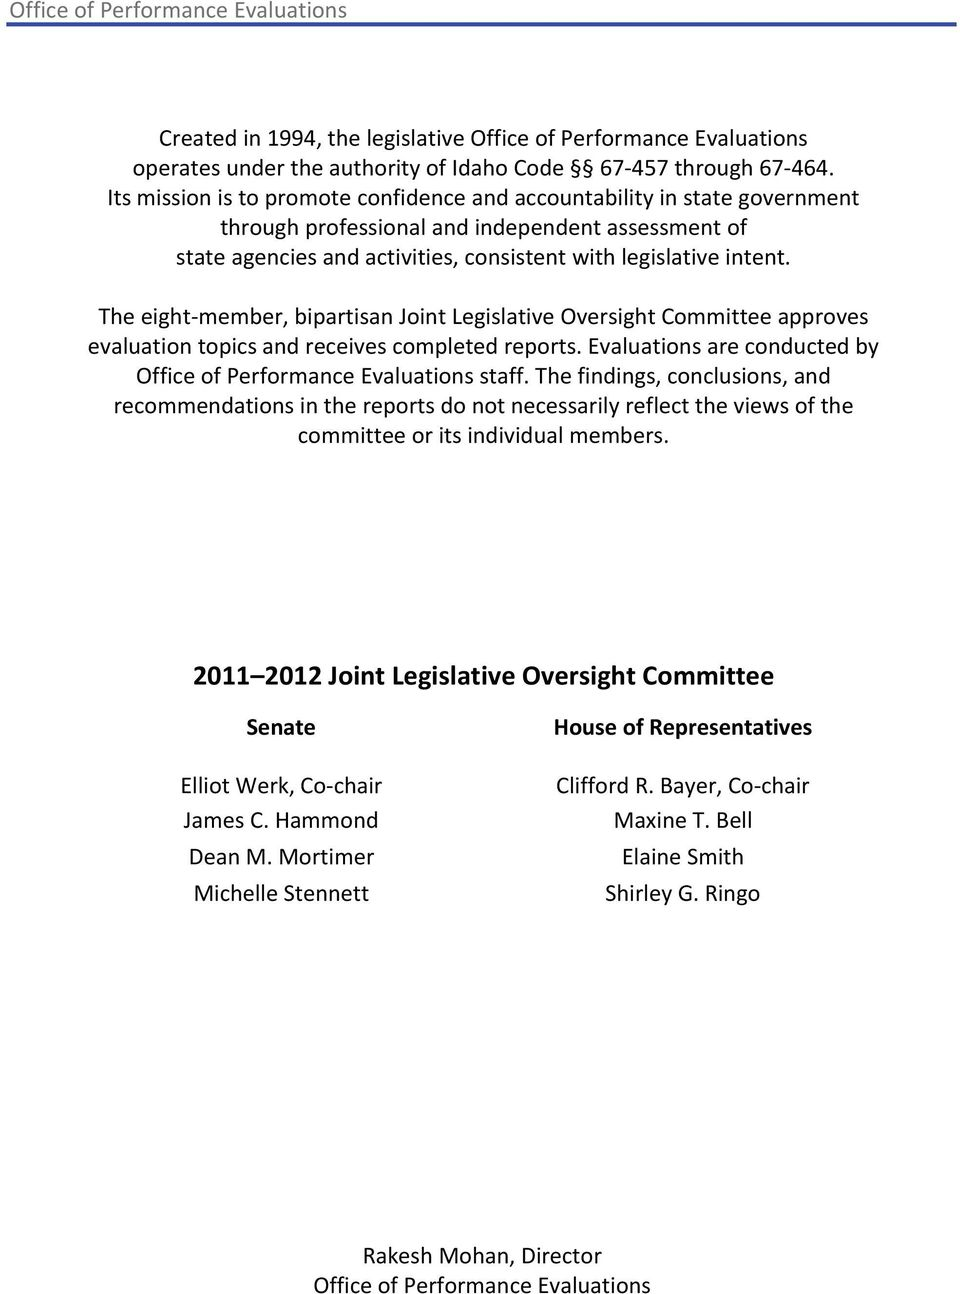 The eight member, bipartisan Joint Legislative Oversight Committee approves evaluation topics and receives completed reports. Evaluations are conducted by Office of Performance Evaluations staff.